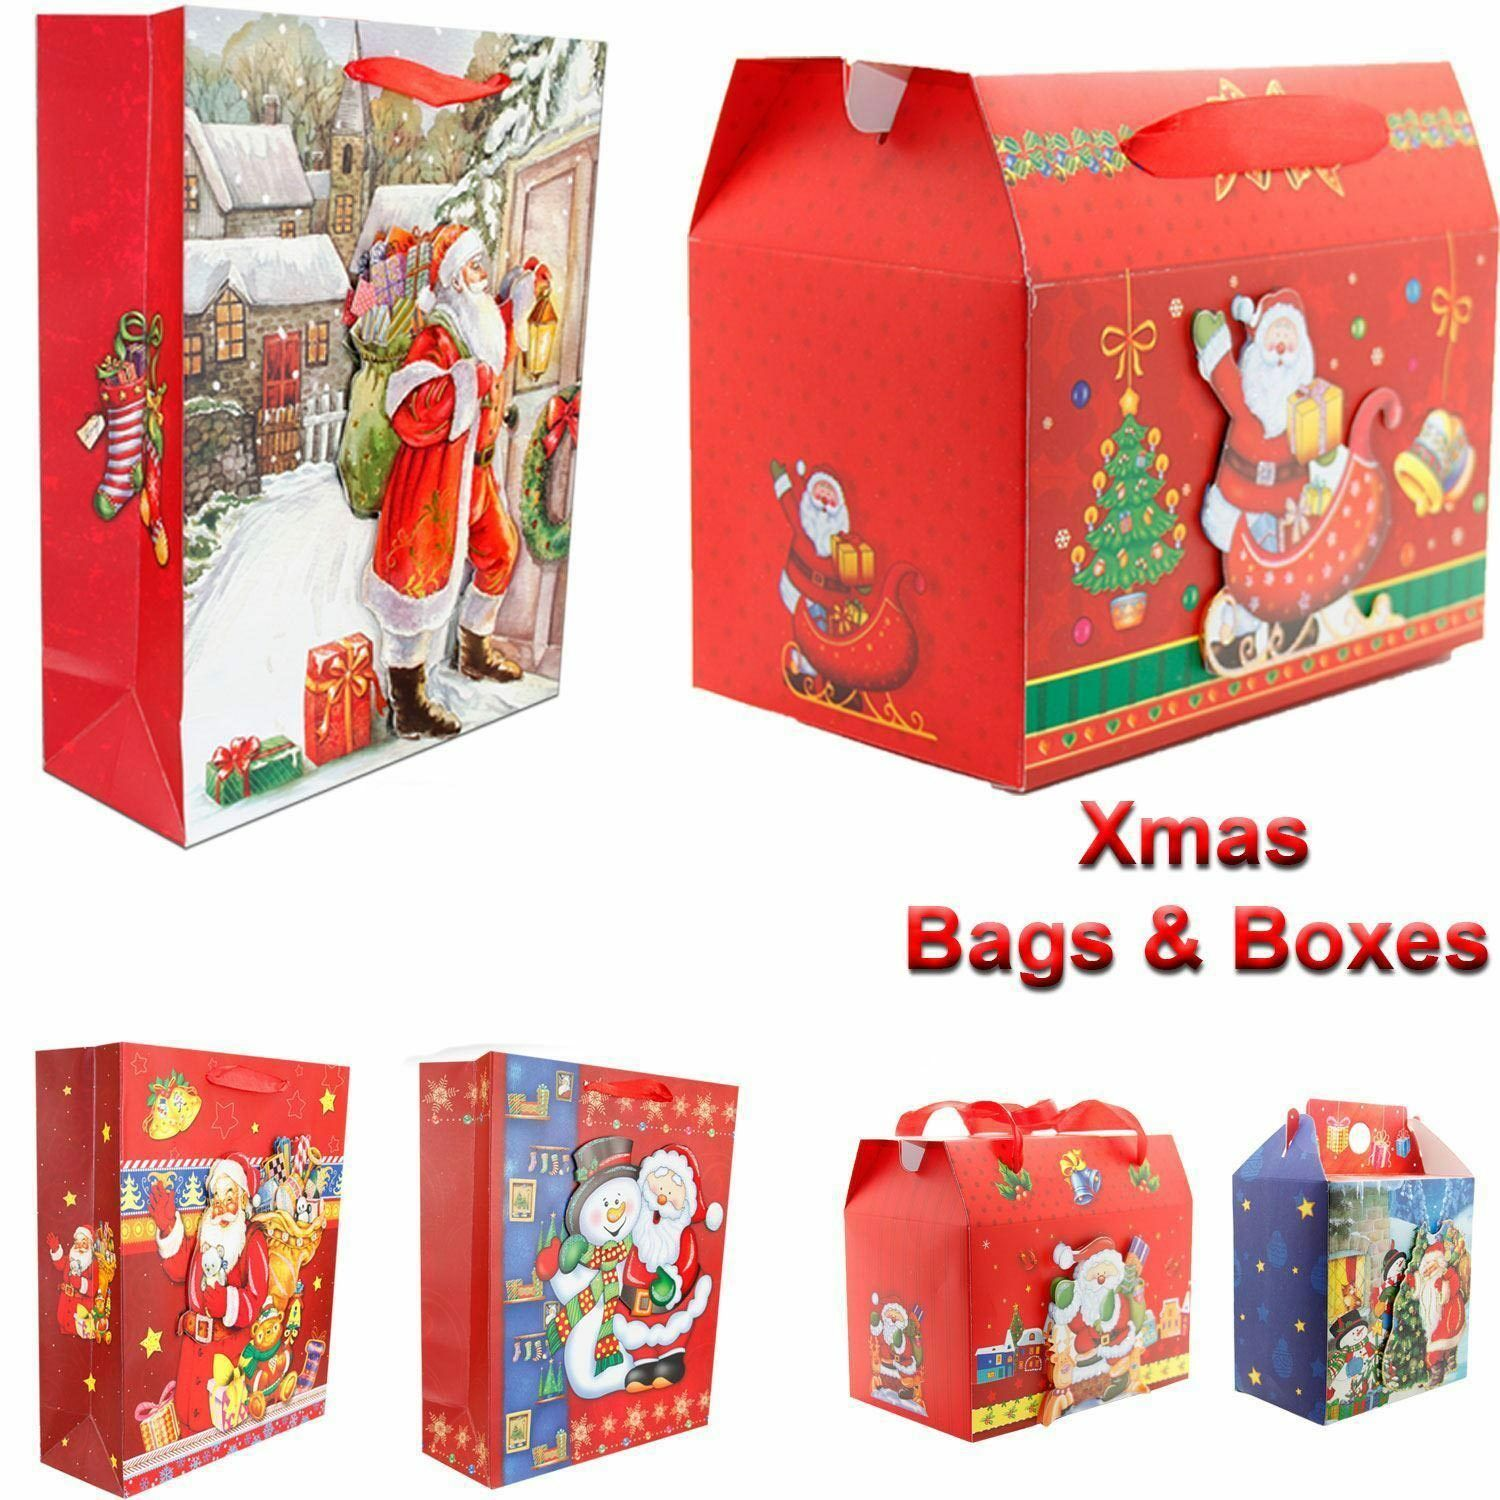 New christmas festive gift d xmas party wrapping novelty